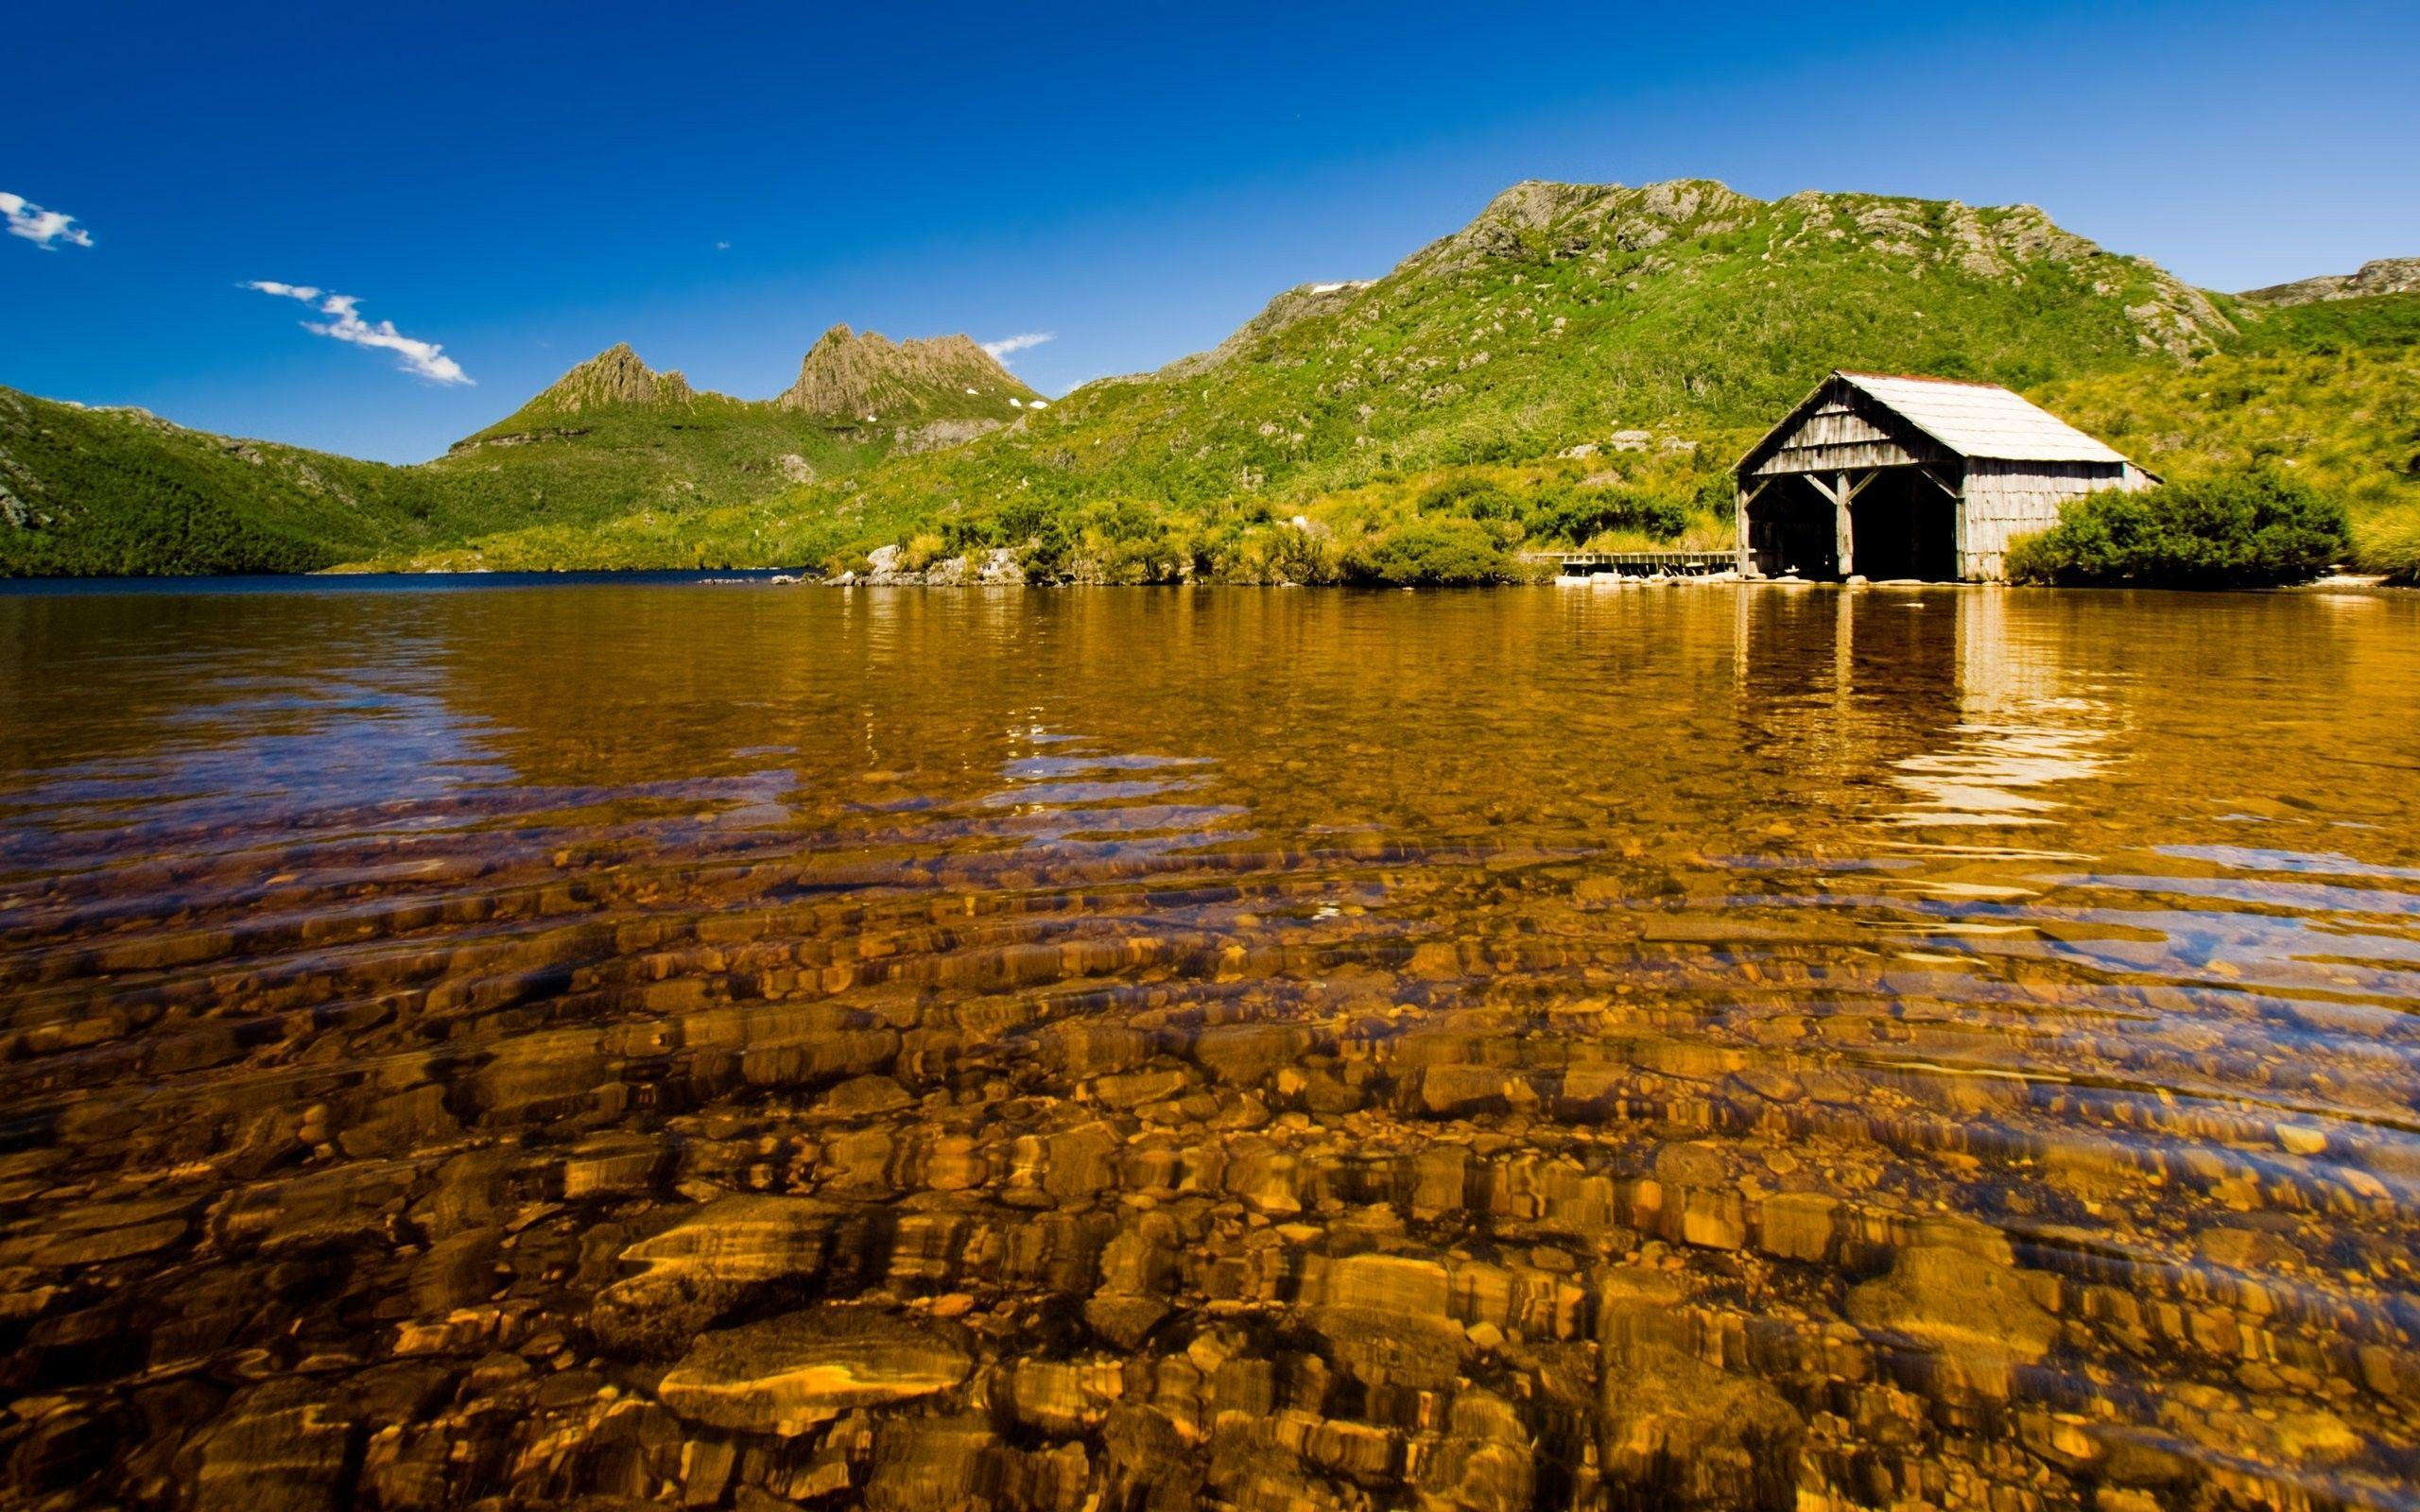 Download the Shallow Boathouse Lake Wallpaper, Shallow Boathouse ...